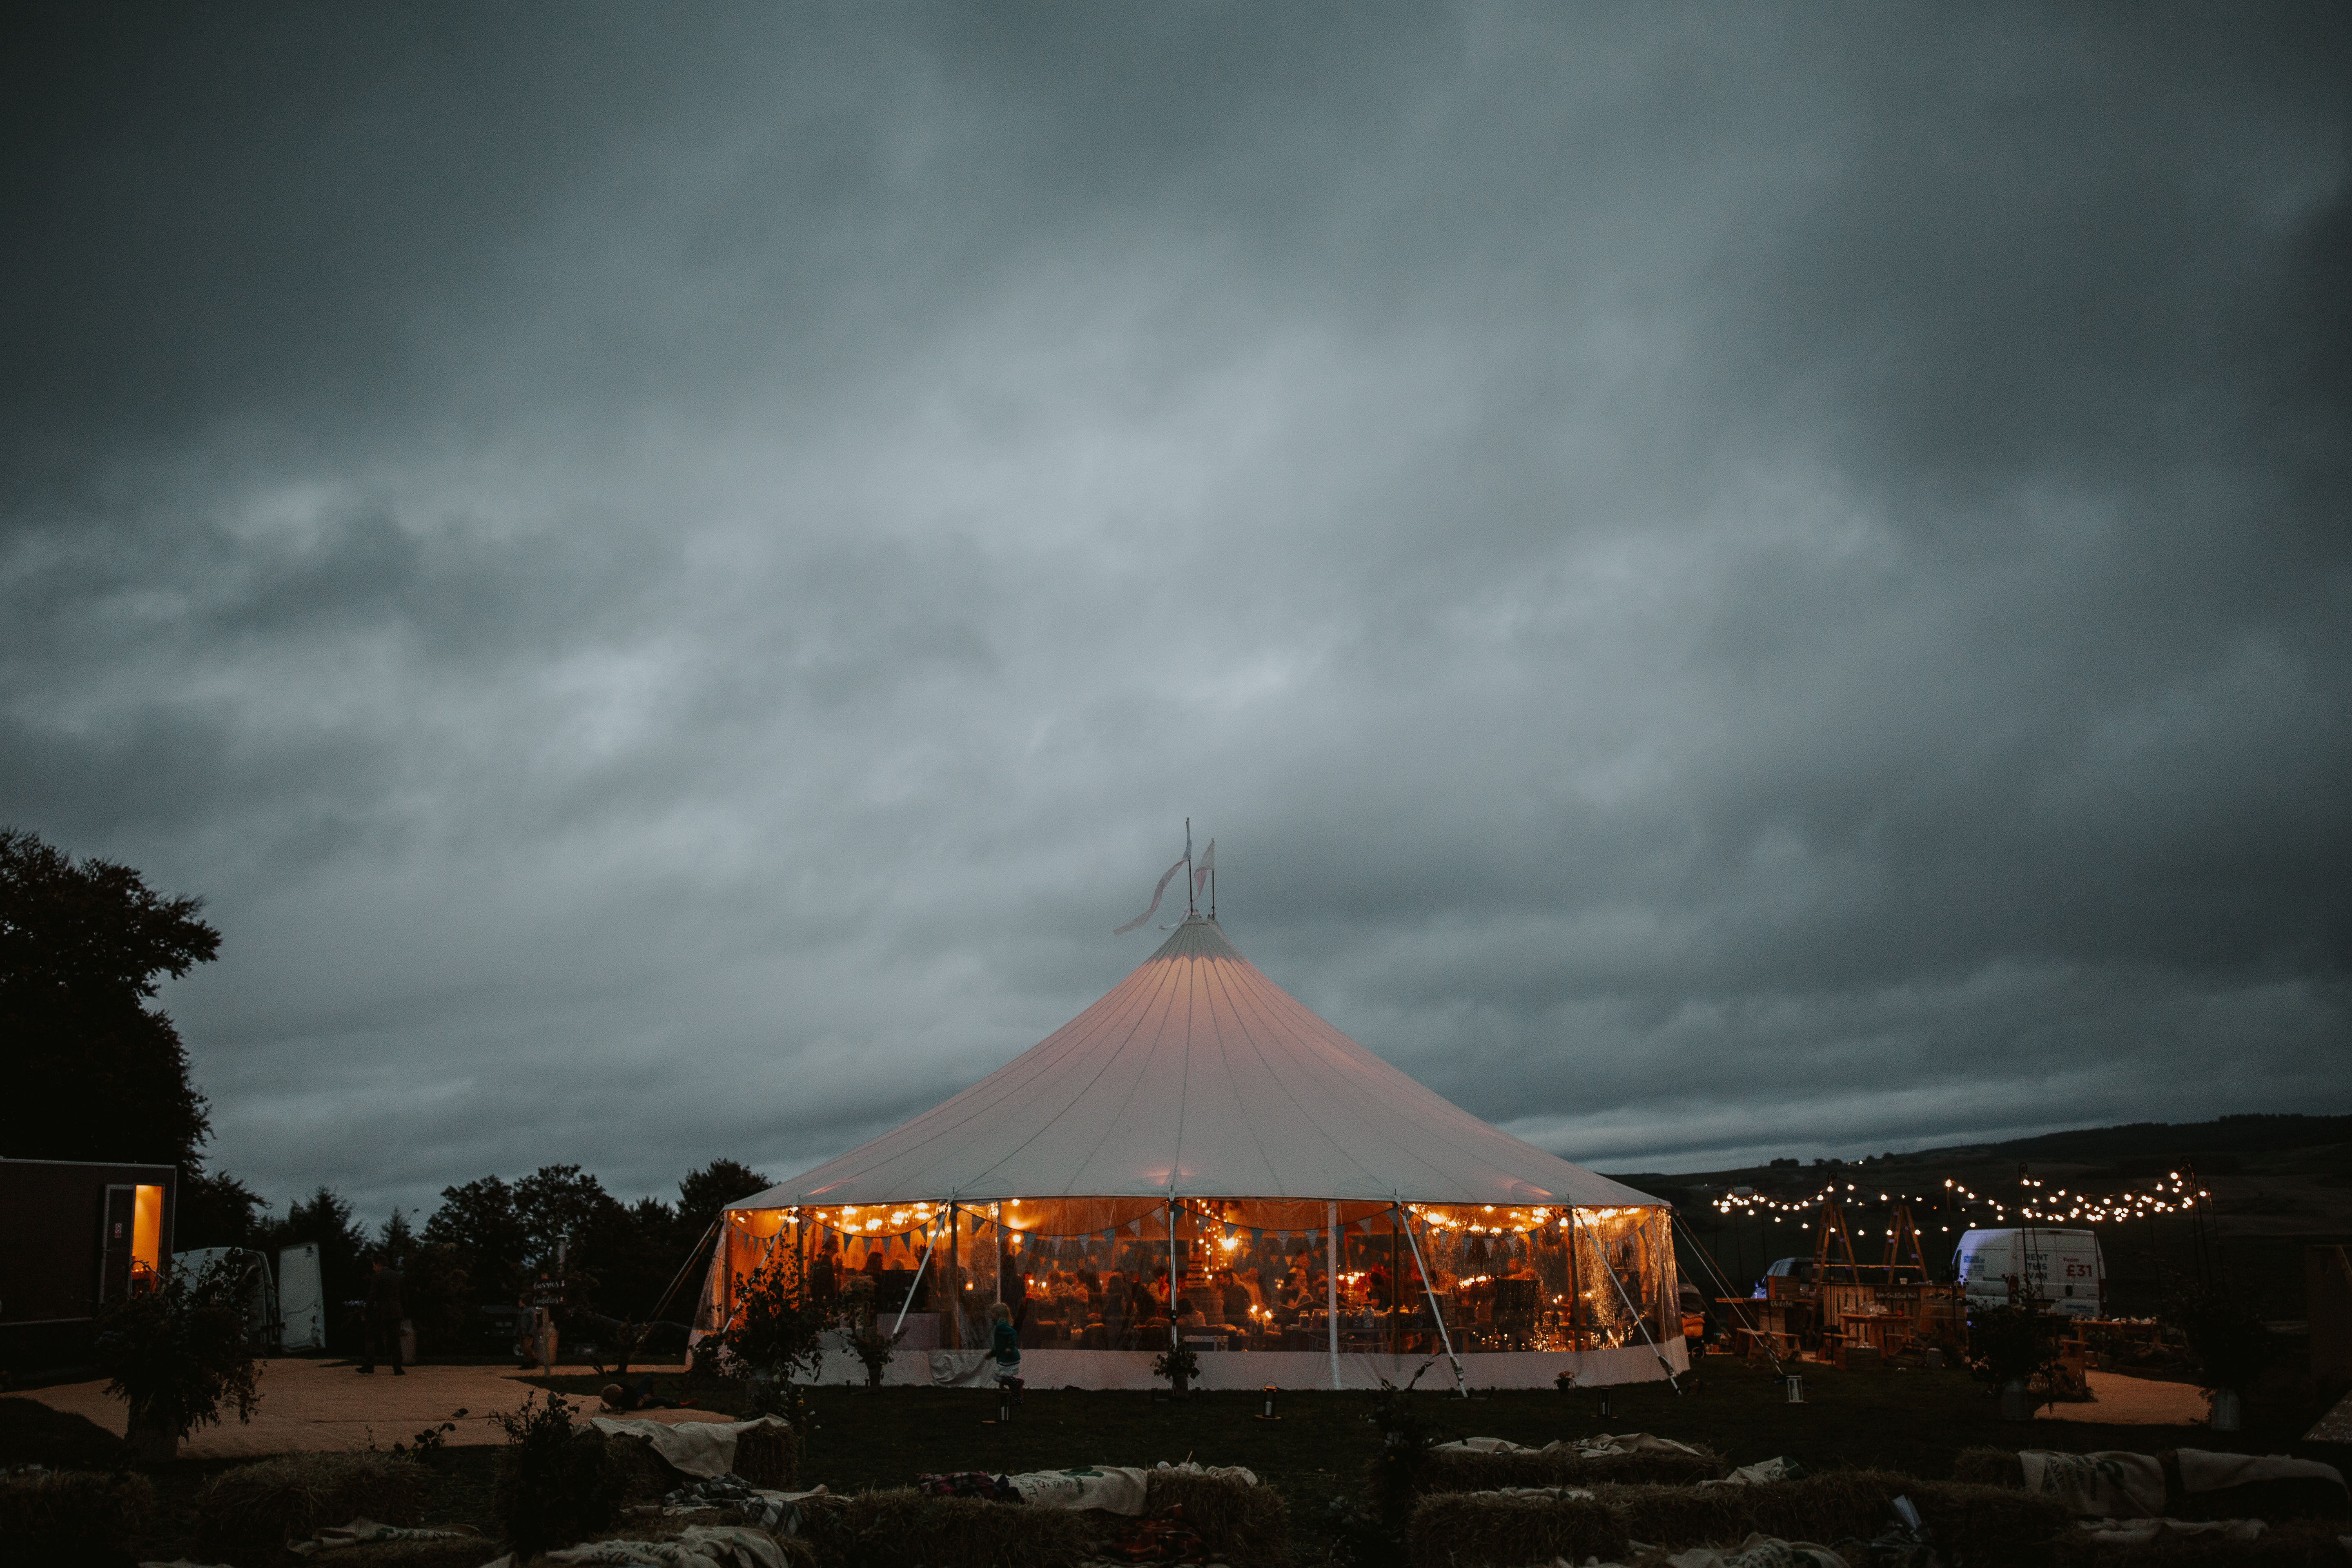 PapaKåta couple Eilidh & Lloyd's Sperry Wedding in Glenfarg, Perthshire captured by Colin Ross Photography- Sperry Tent Exterior at night